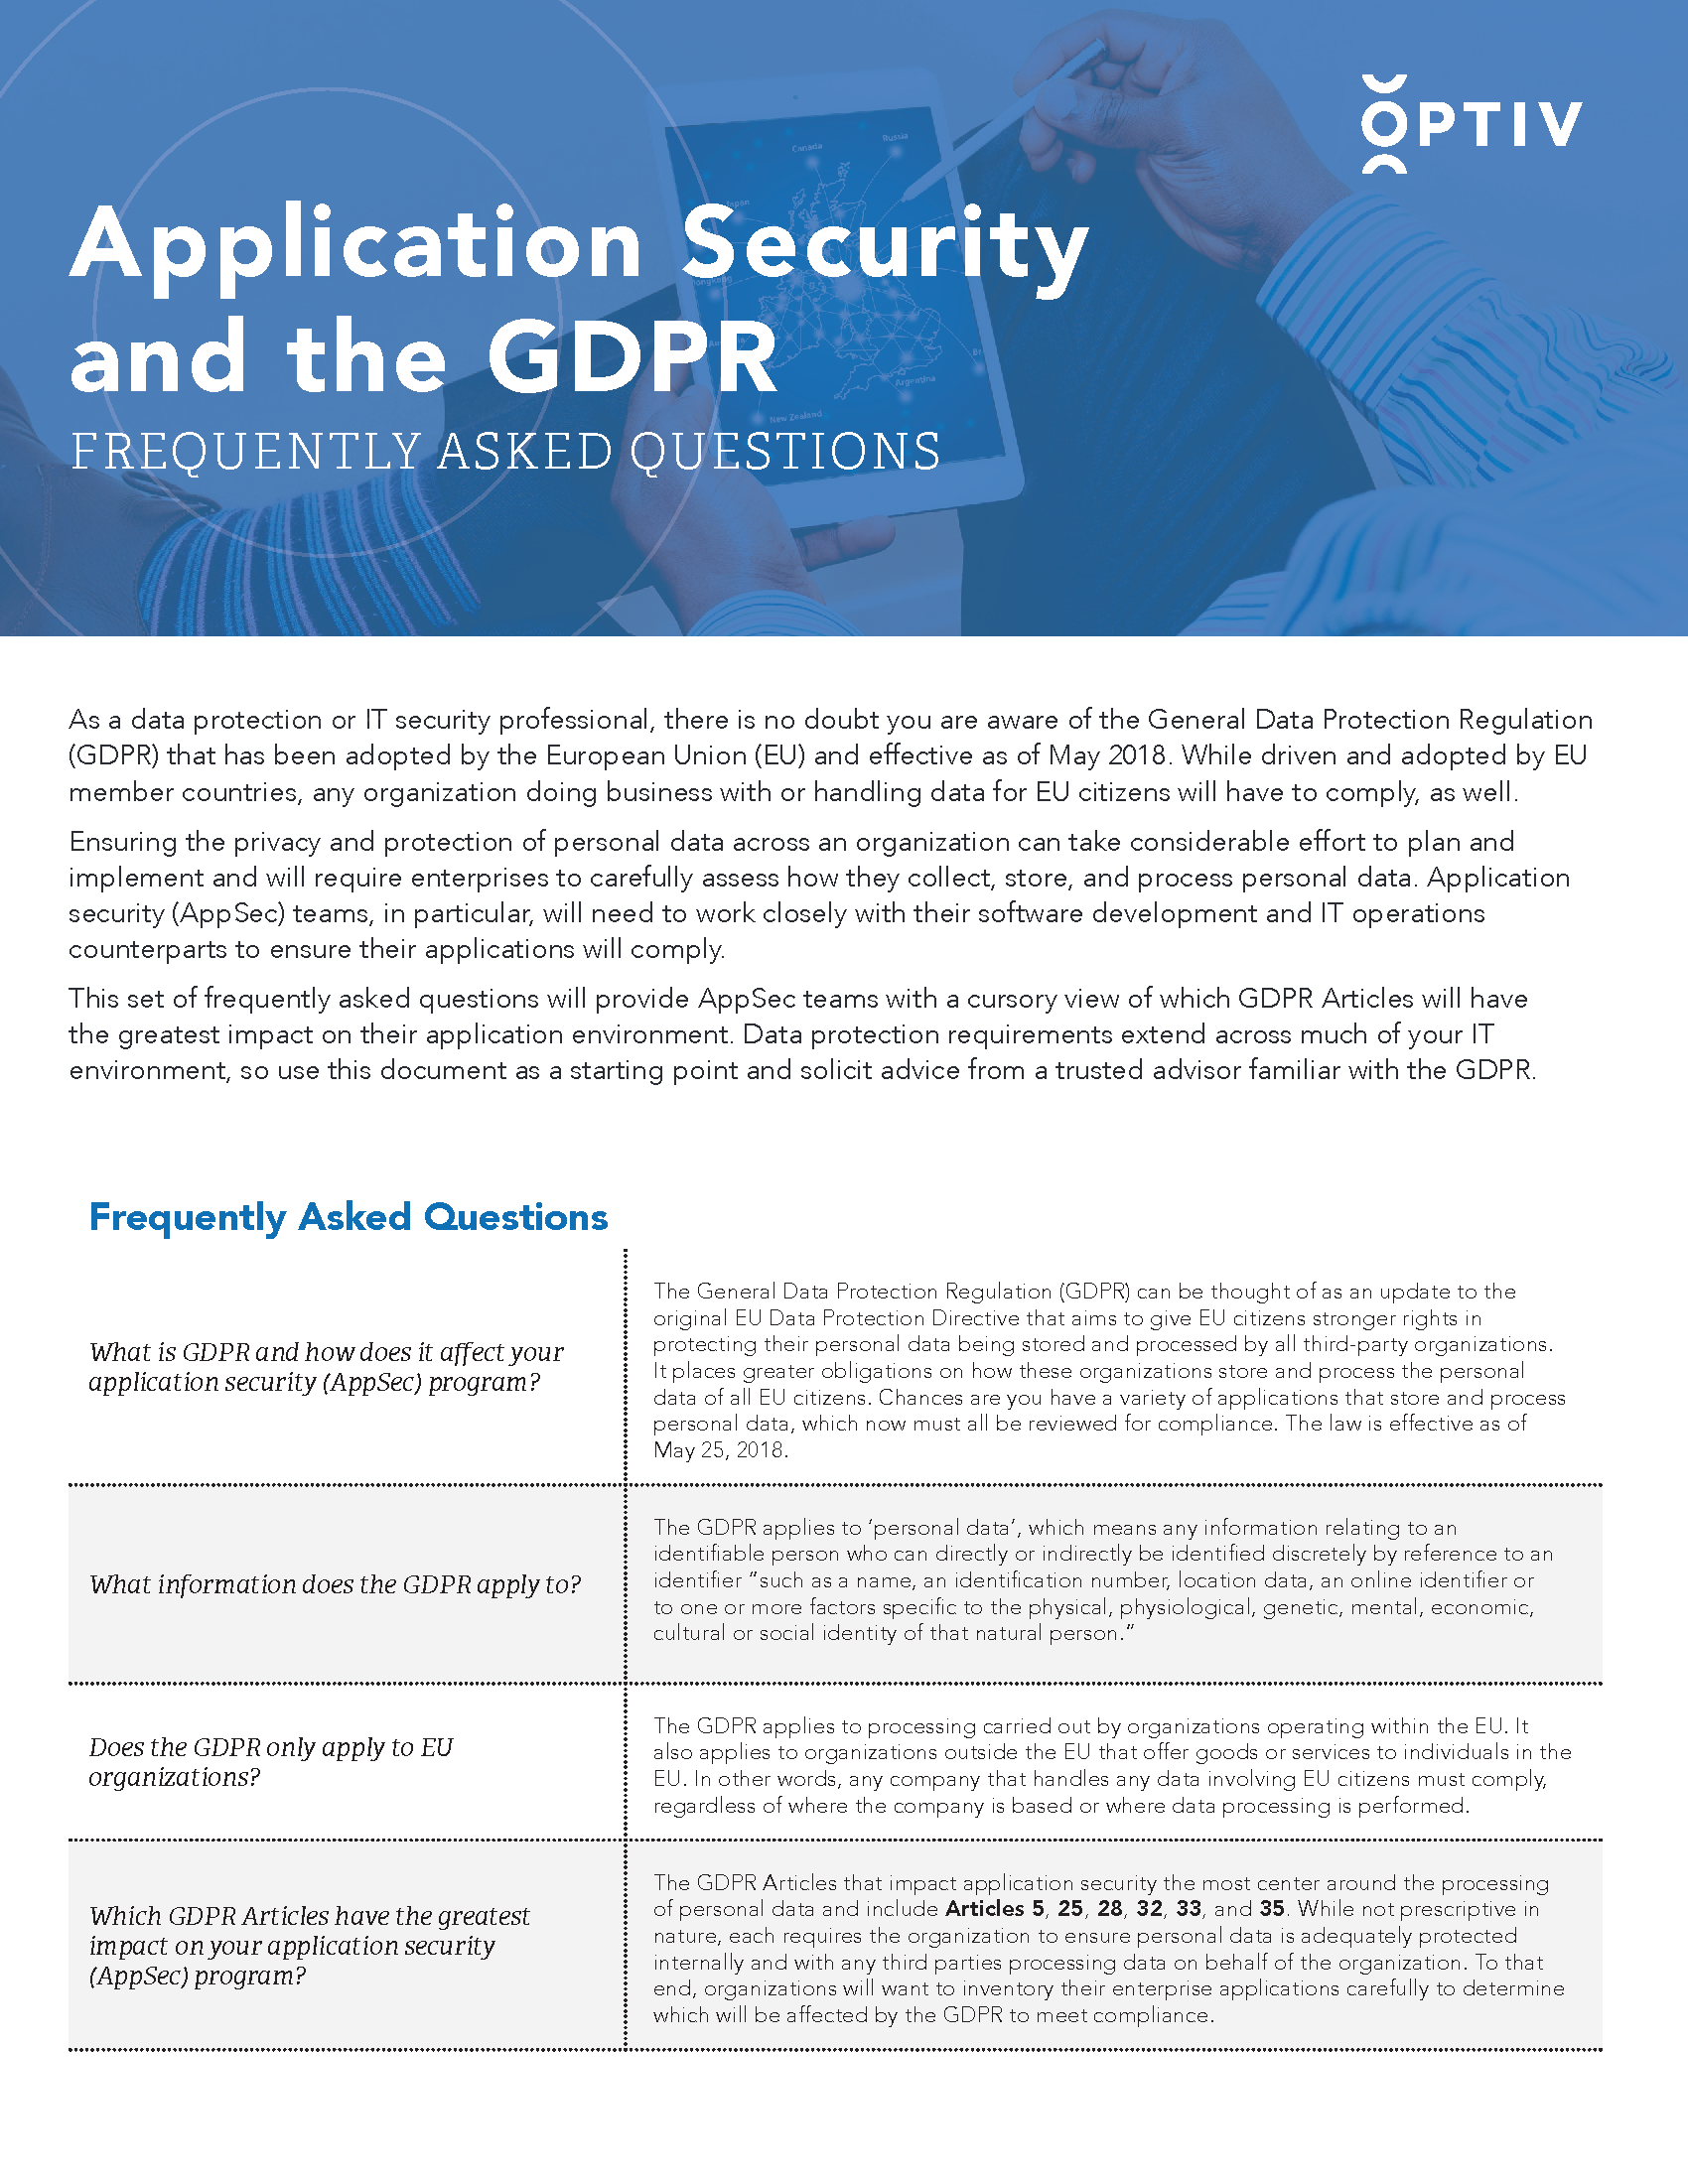 Application Security and the GDPR